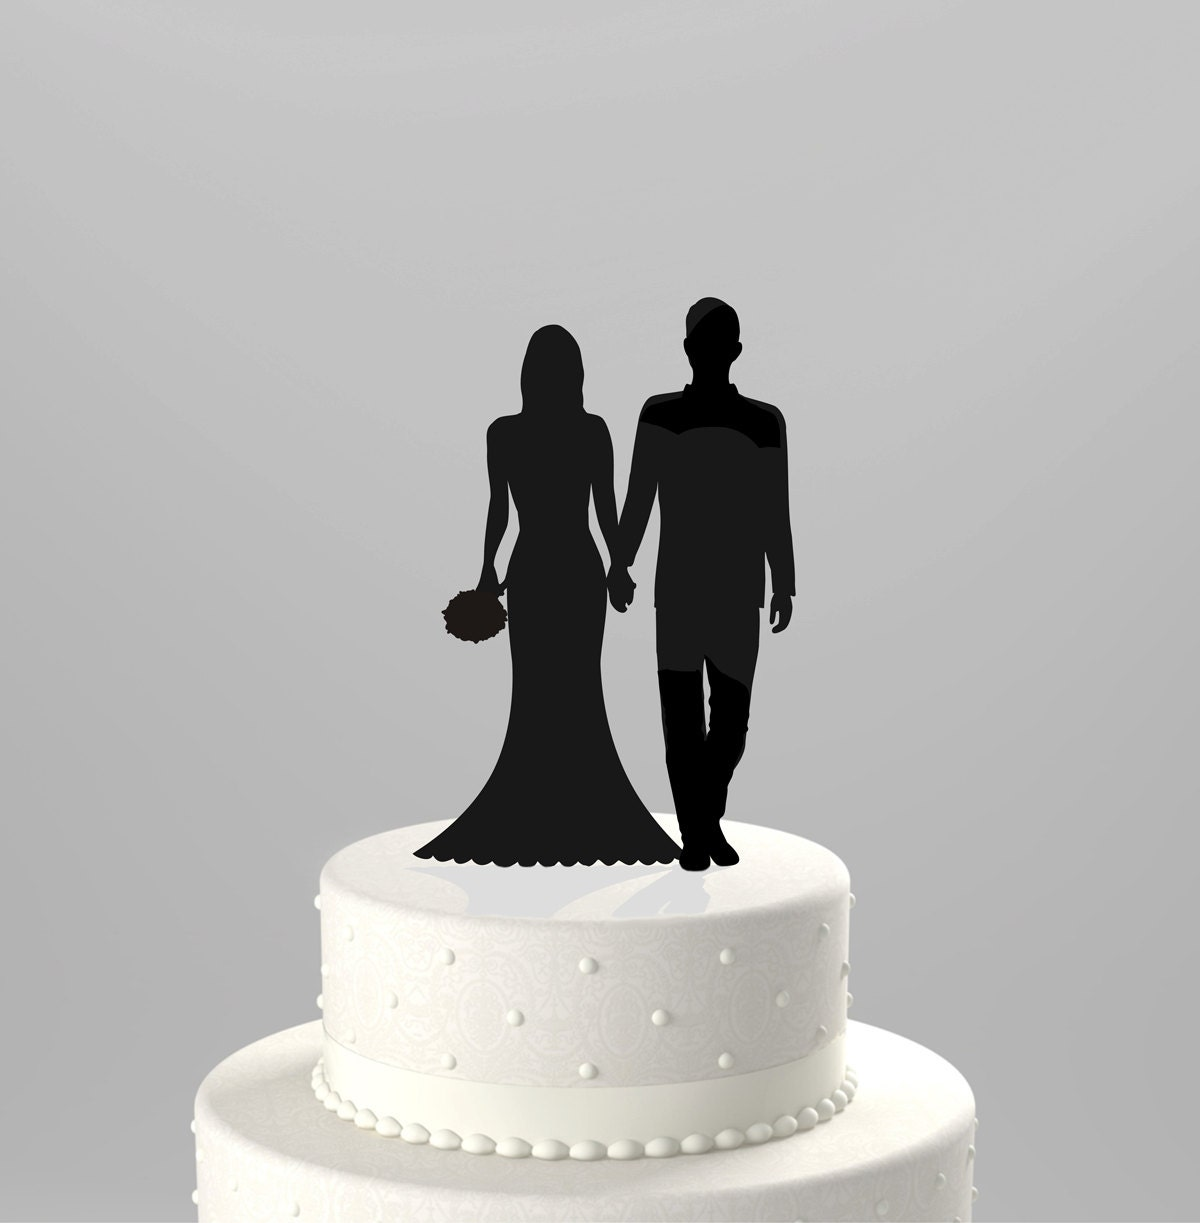 Acrylic Silhouette Wedding Cake Topper